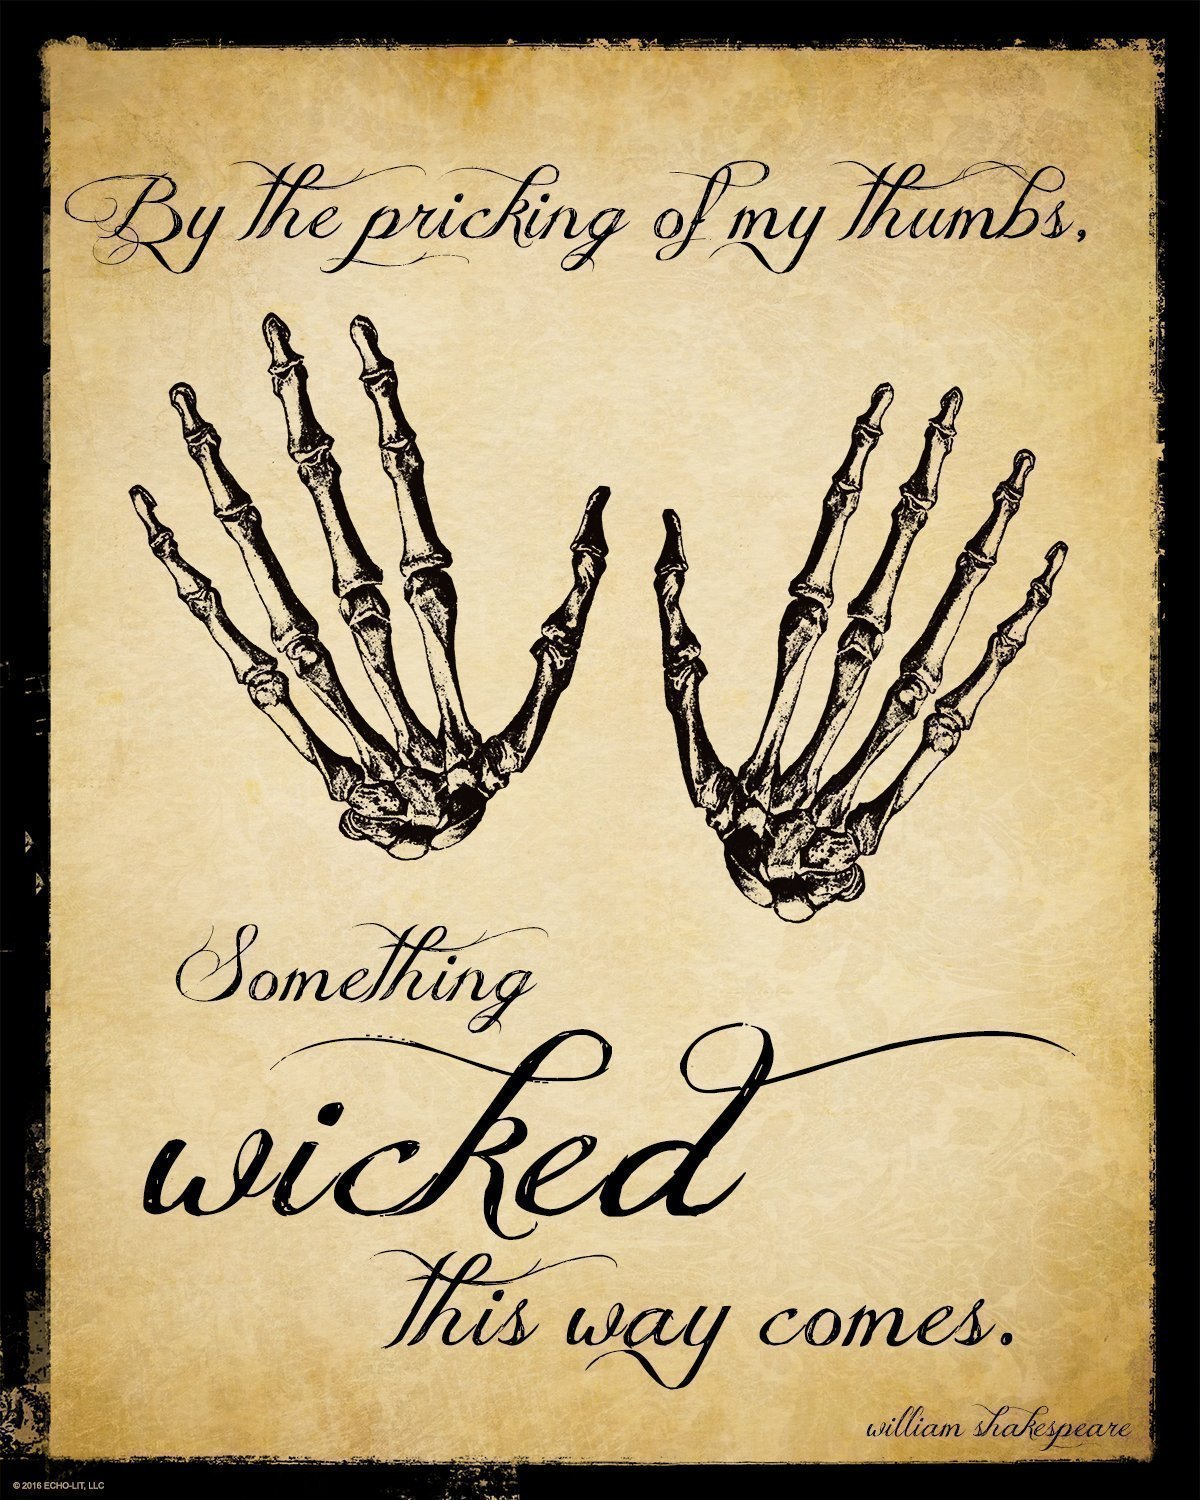 Amazon.com: Something Wicked This Way Comes Shakespeare Literary ...